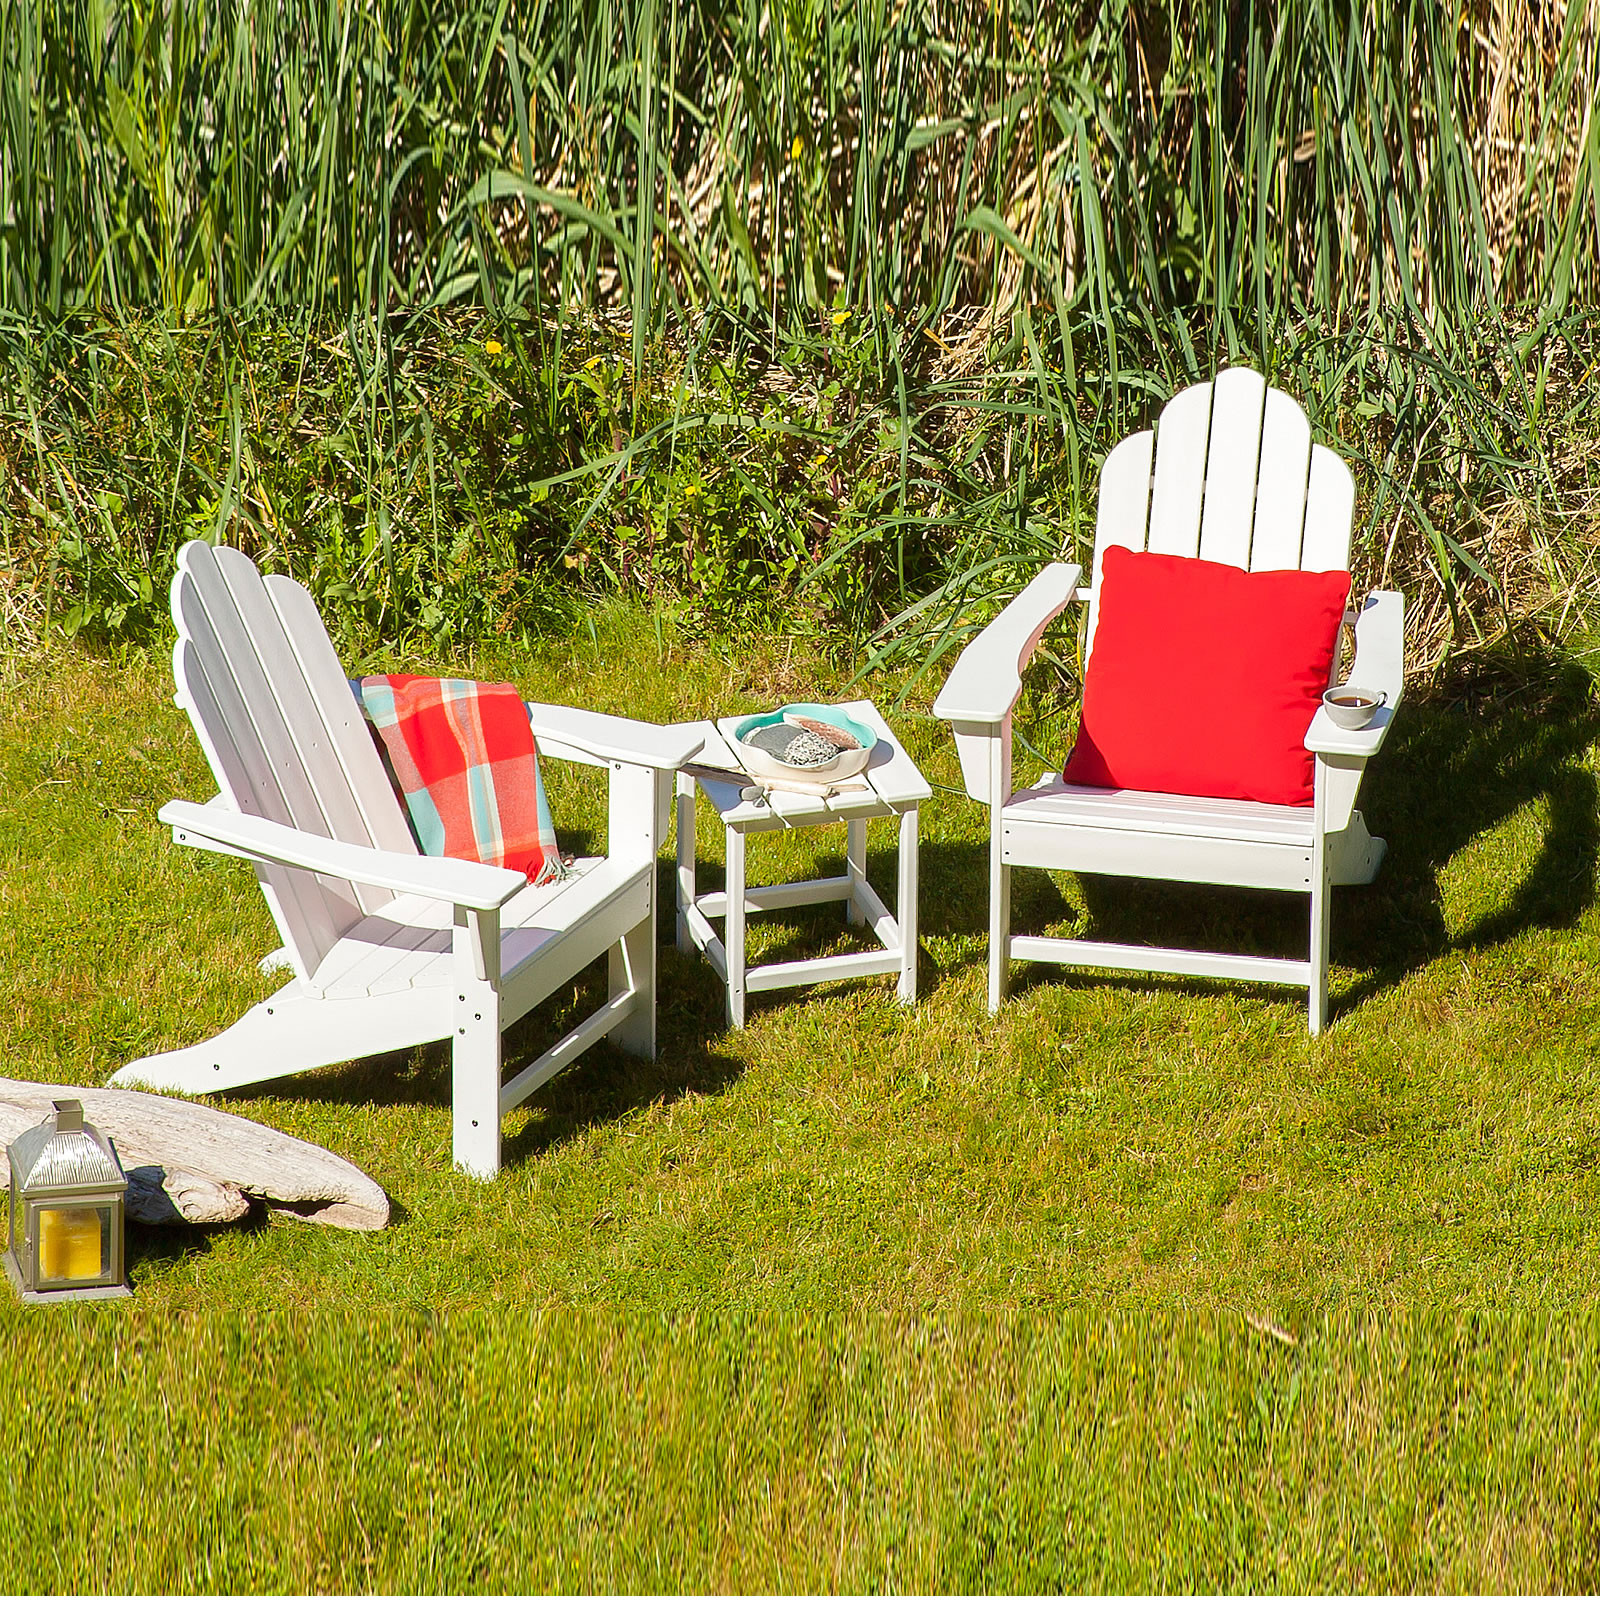 POLYWOOD Long Island Adirondack Seating Set Long Island - Outdoor furniture long island